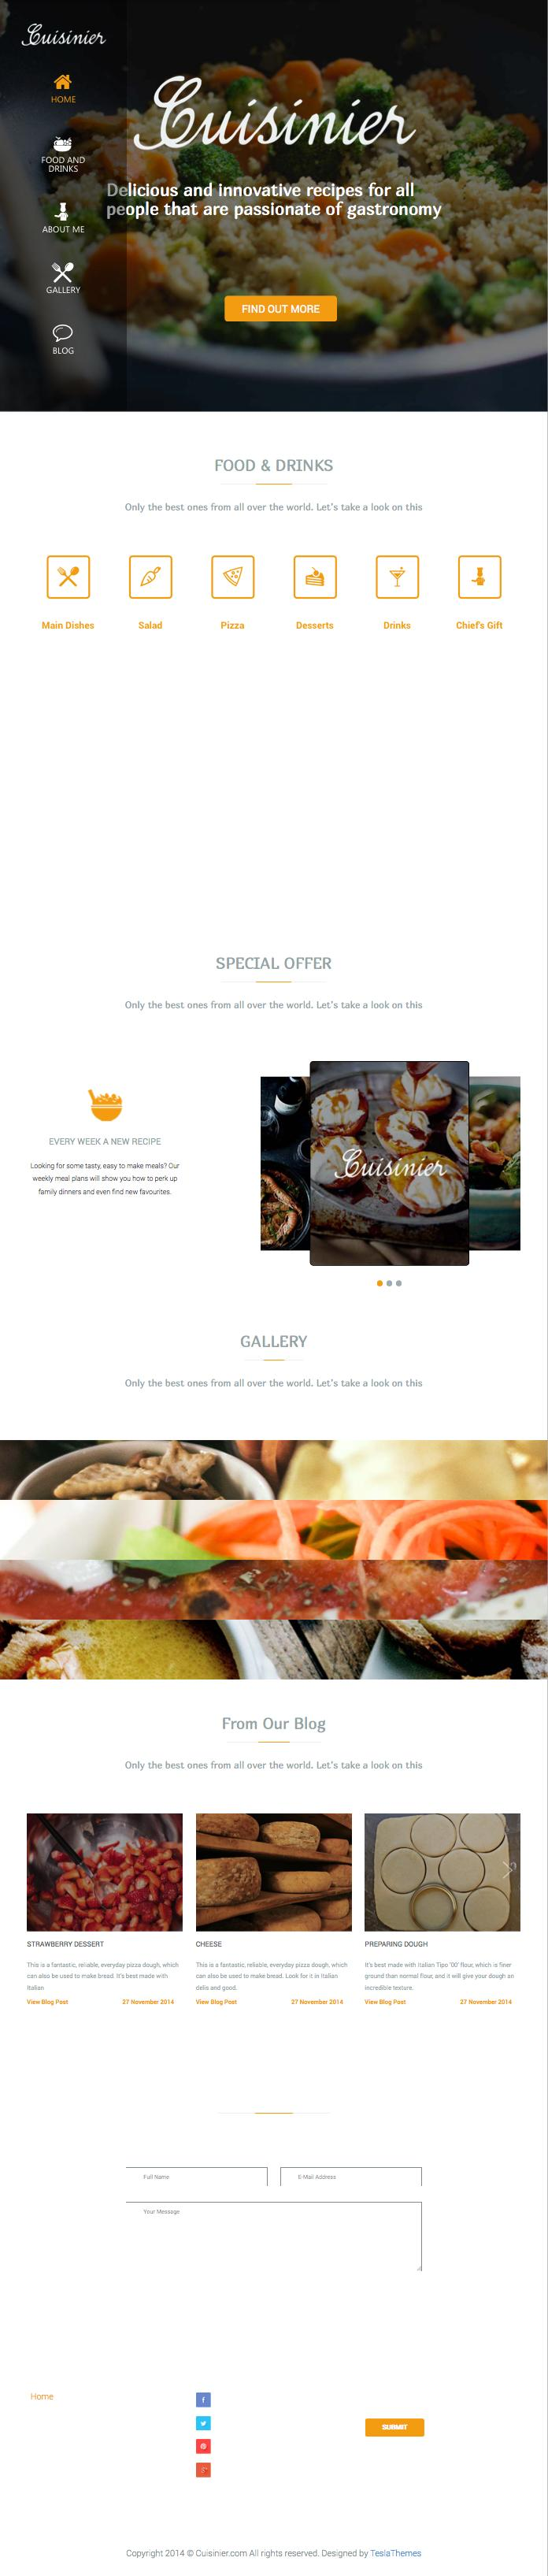 Cuisinier WordPress Food Recipe Theme